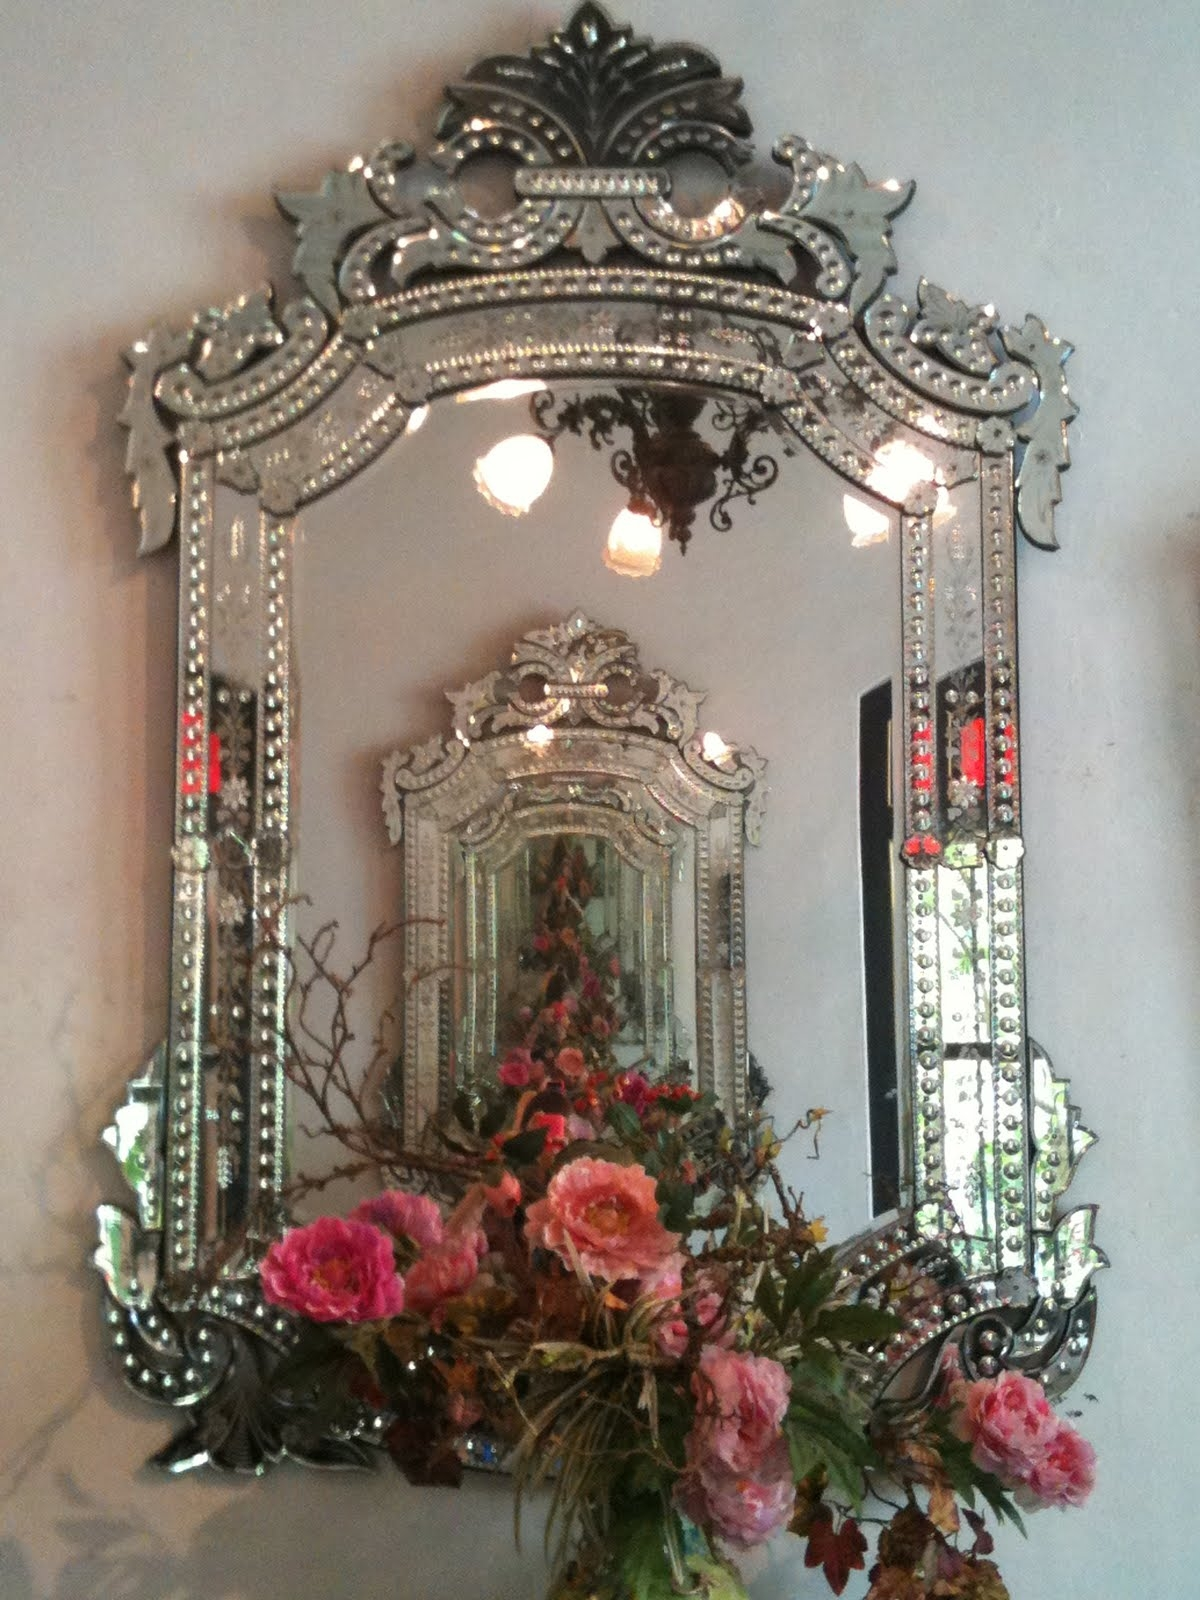 Venetian Mirror Ami The Prettiest Asked The Rose Ohhhh I Love Within Venetian Mirrors Wholesale (Image 13 of 15)